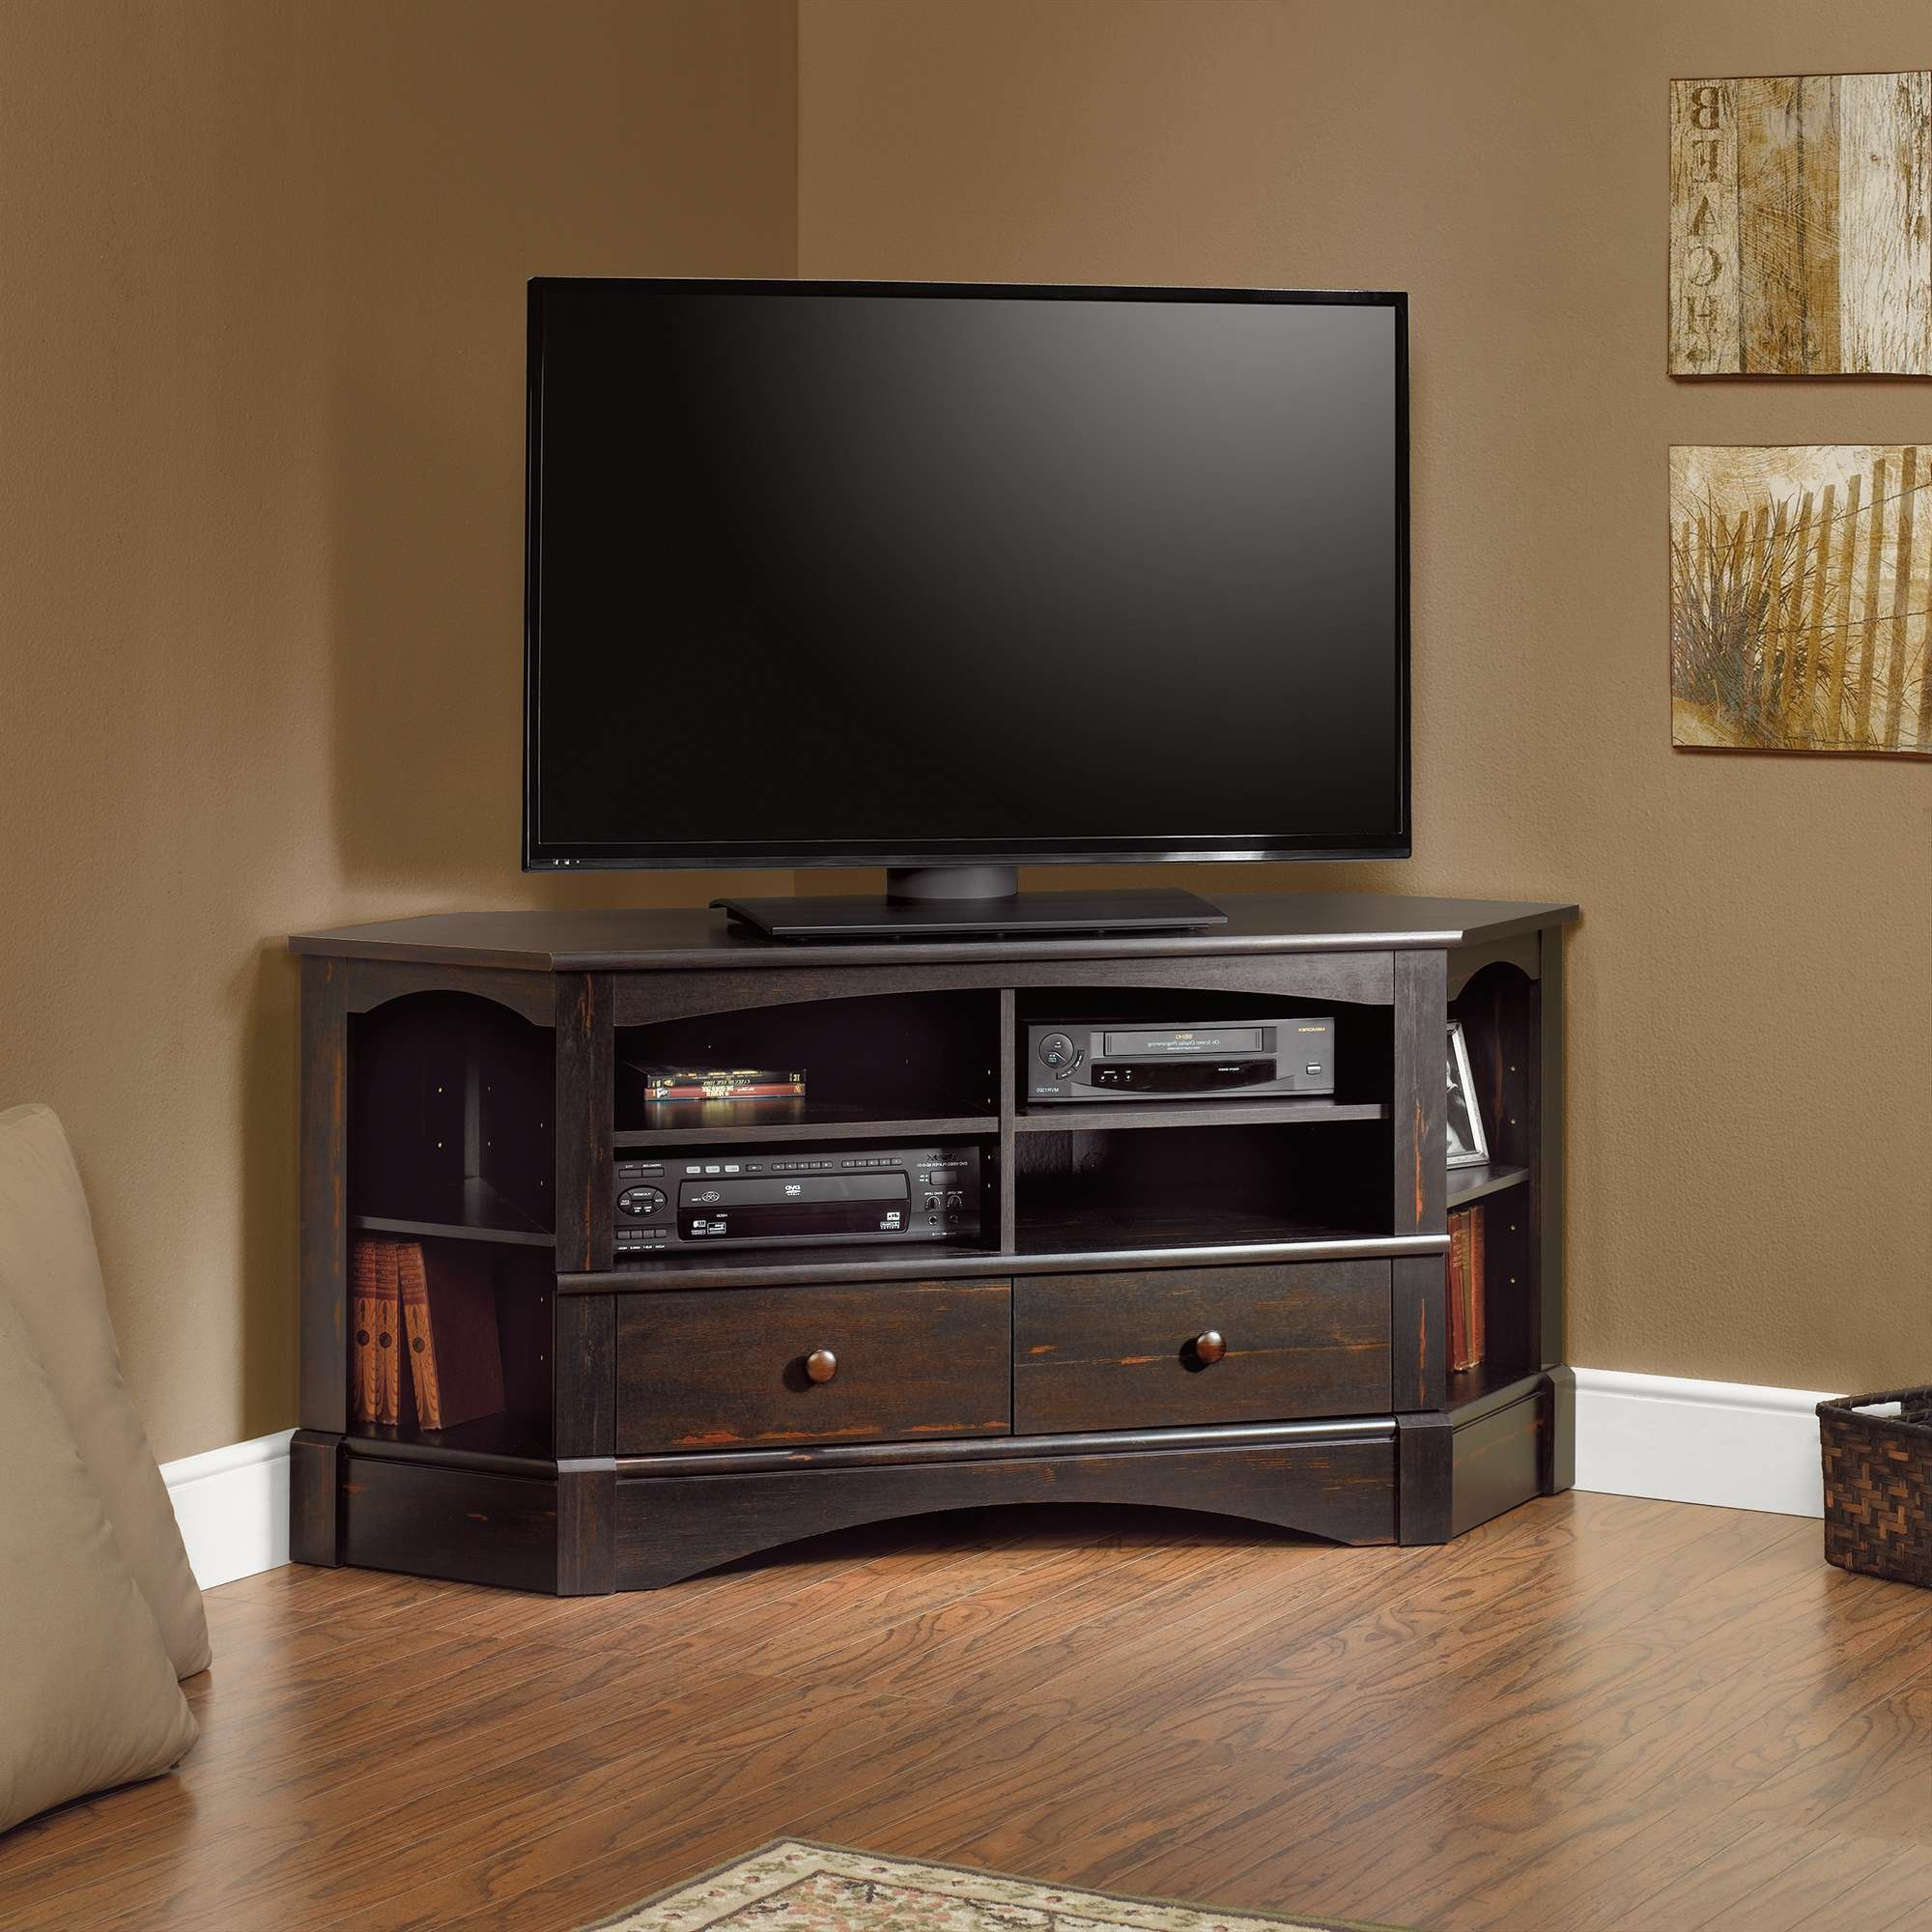 Harbor View | Corner Entertainment Credenza | 402902 | Sauder Within Corner Tv Stands (View 7 of 15)